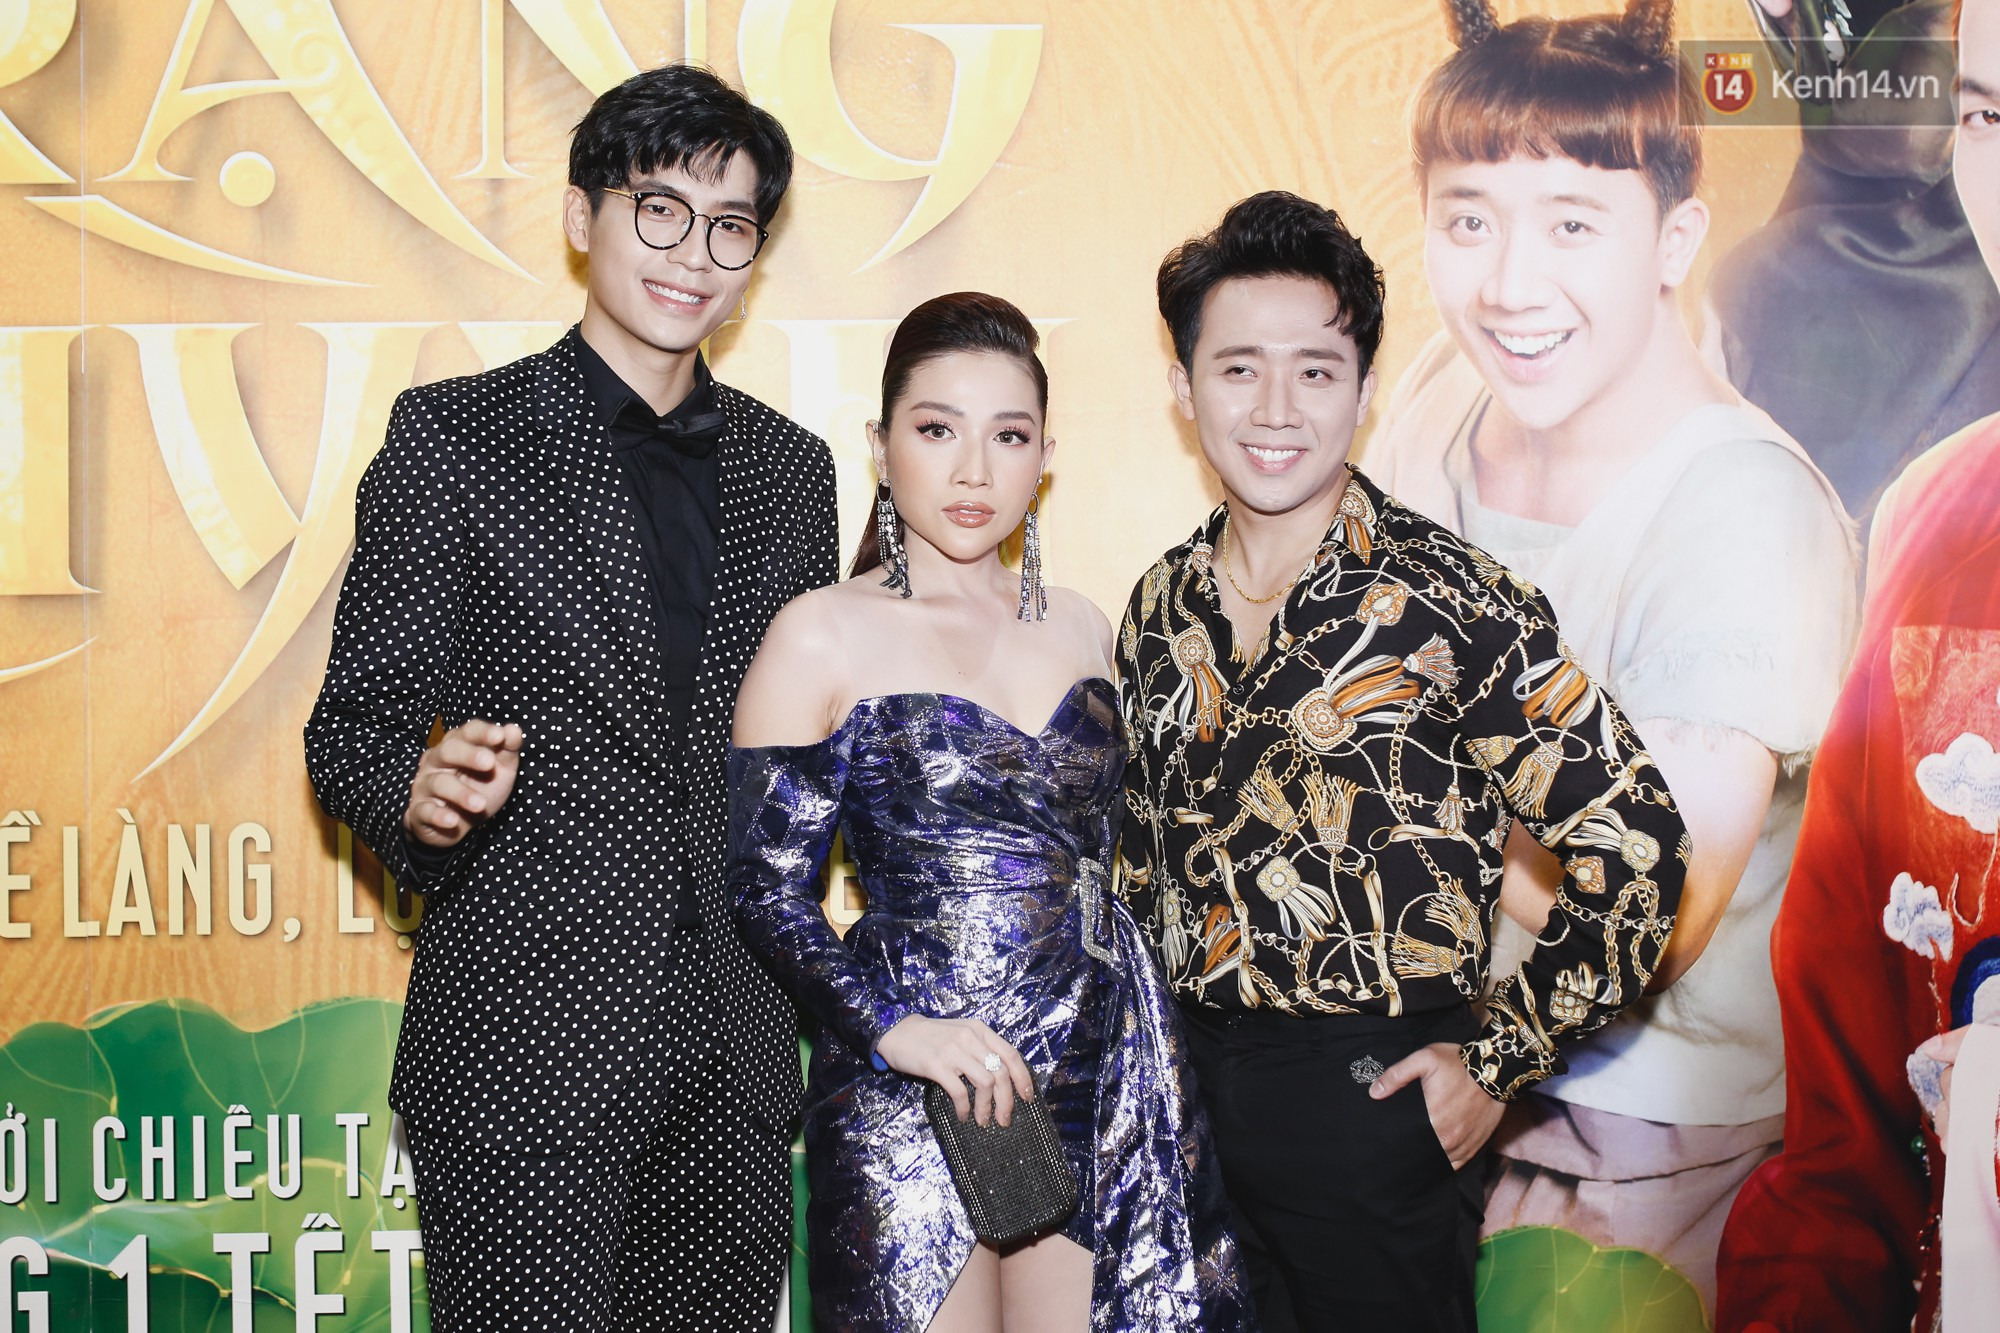 Nha Phuong was absent at the premiere of Trang Quynh after the rumors of her first child - picture 1.